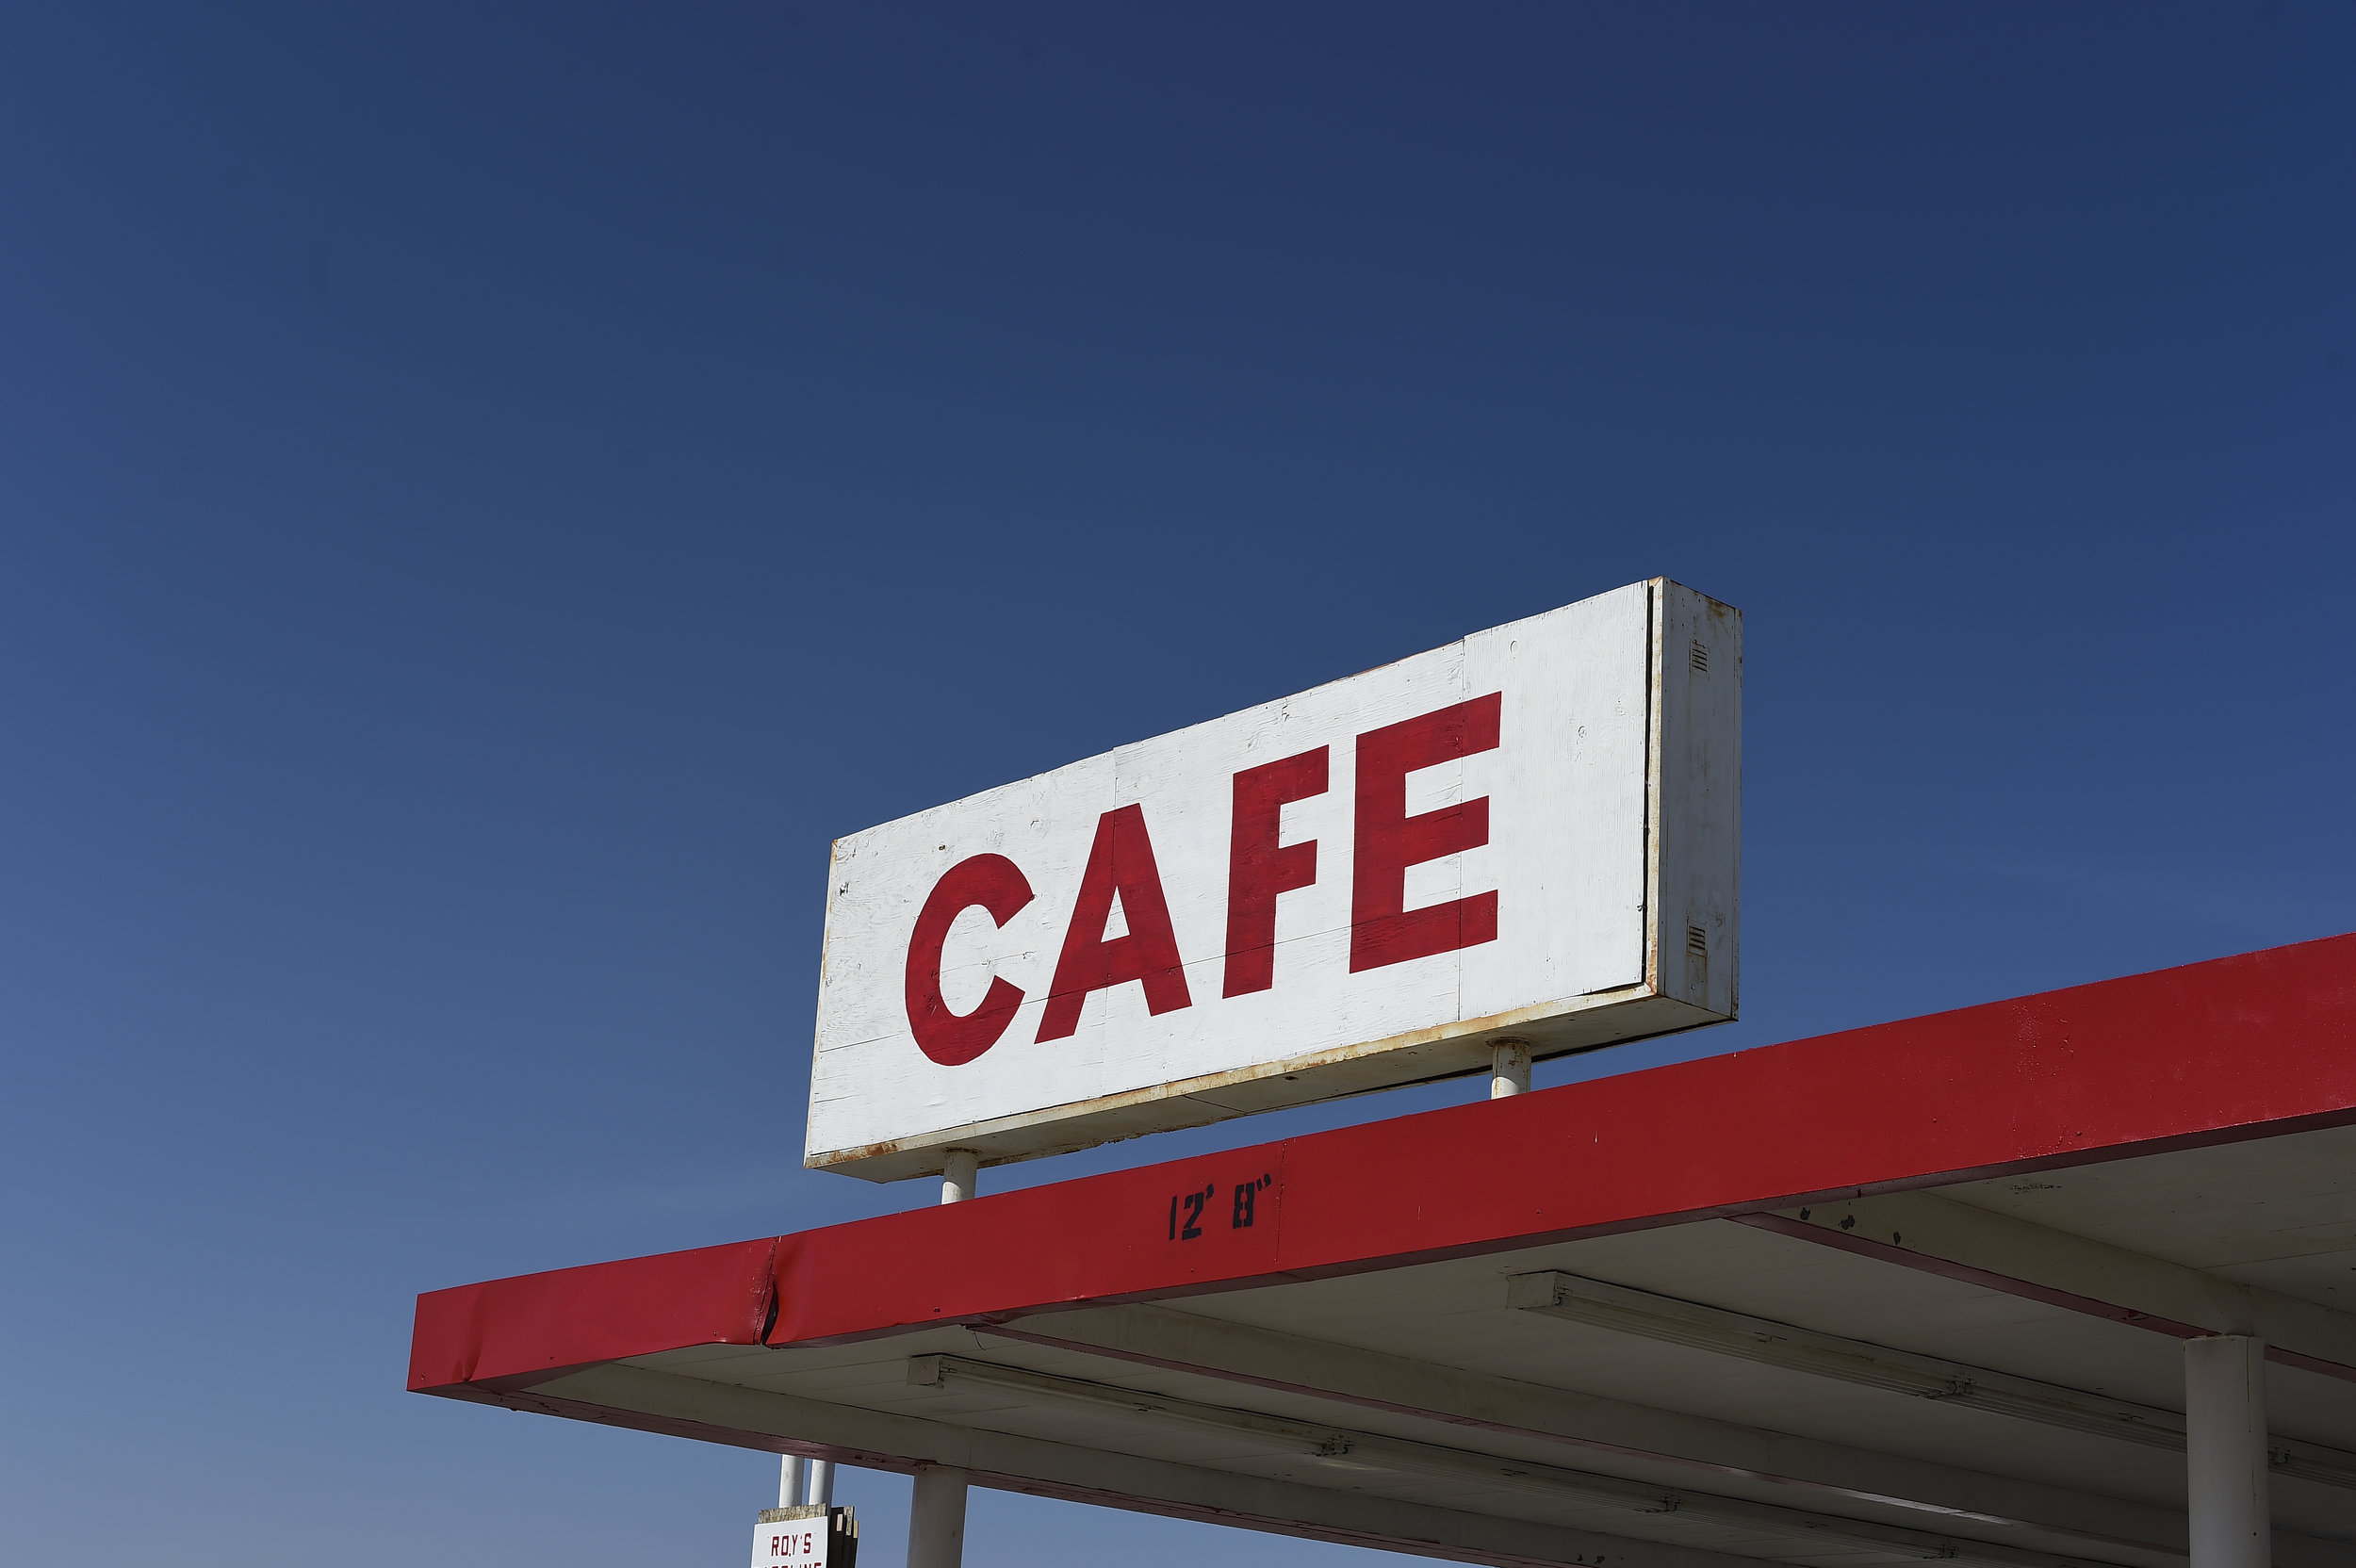 Cafe - Route 66, California